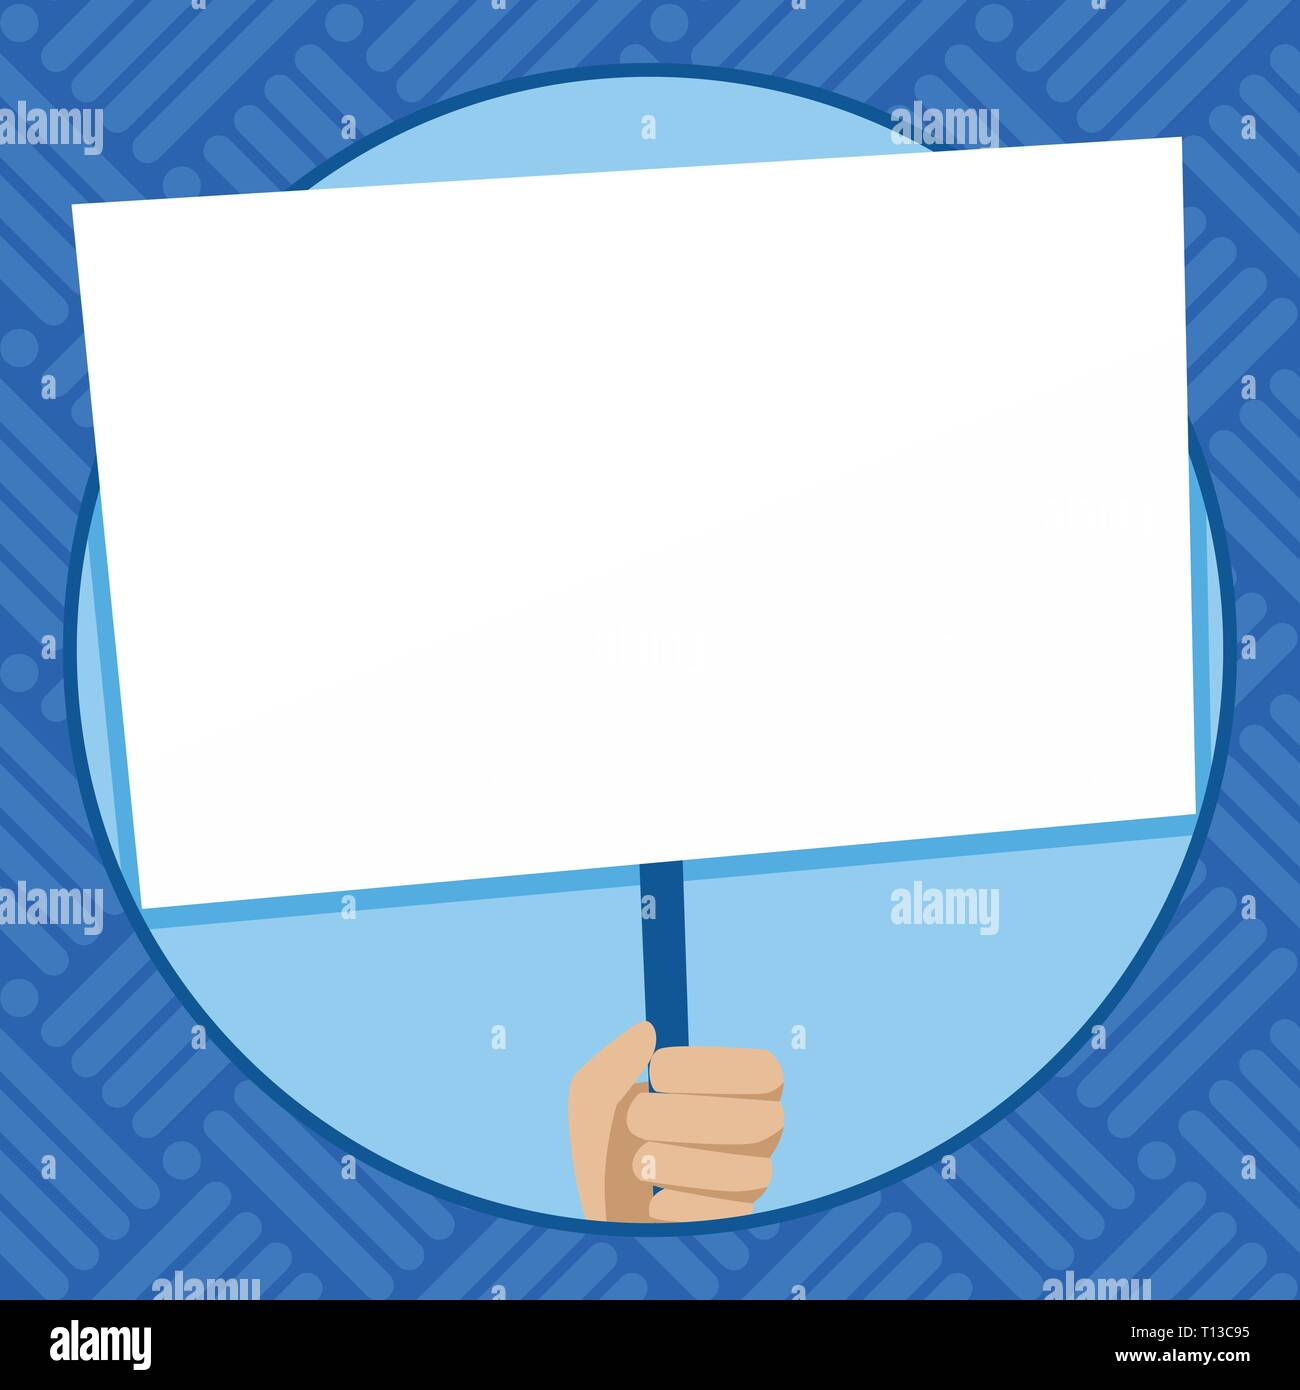 Hand Holding Blank White Placard Supported by Handle for Social Awareness Design business concept Empty copy space modern abstract background - Stock Vector